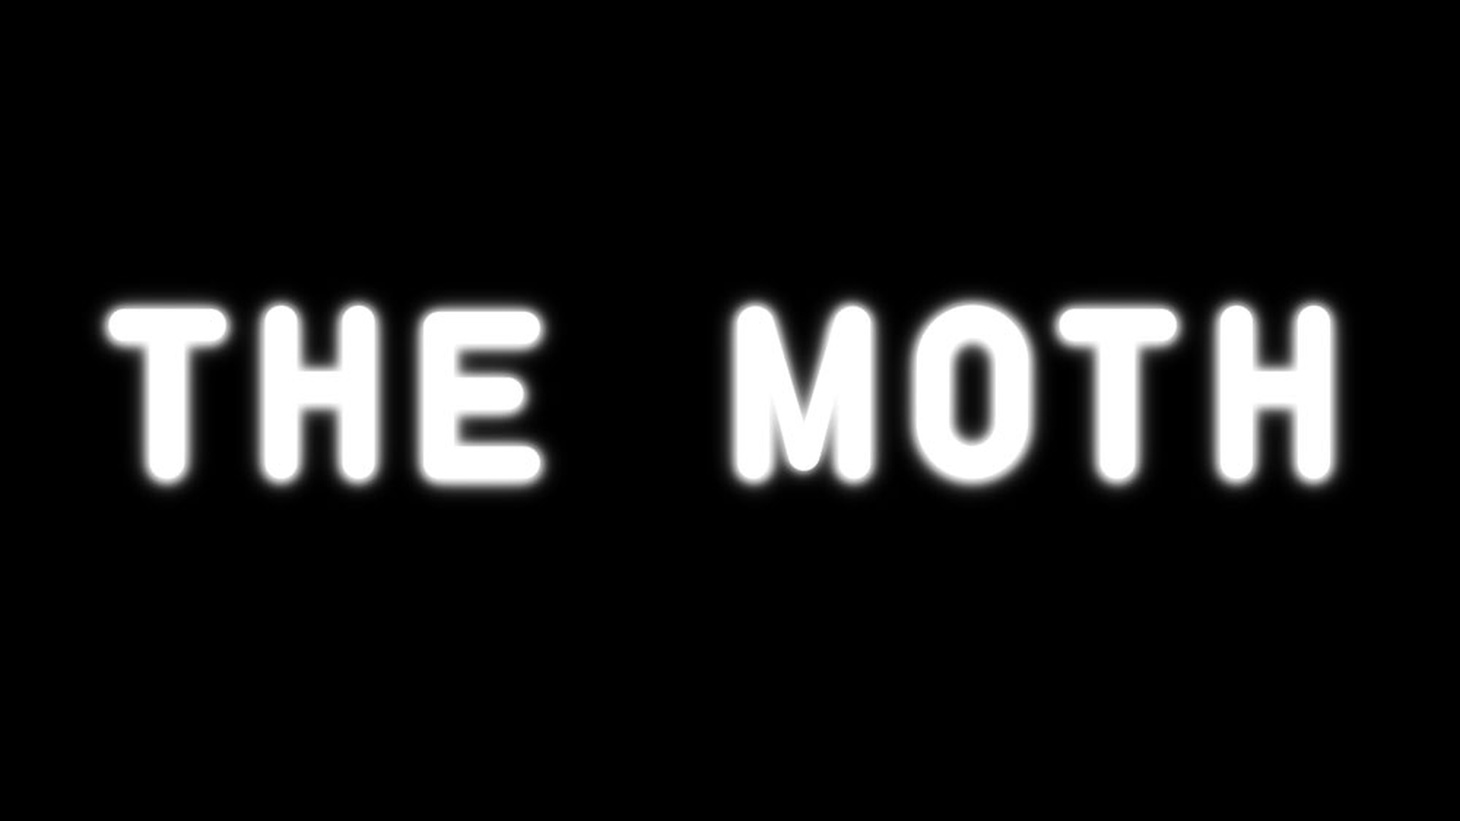 This is a special edition of The Moth Radio Hour. If you've never heard The Moth, you're in for totally unique radio experience. The Moth presents stories told live on stage without a script or a safety net...